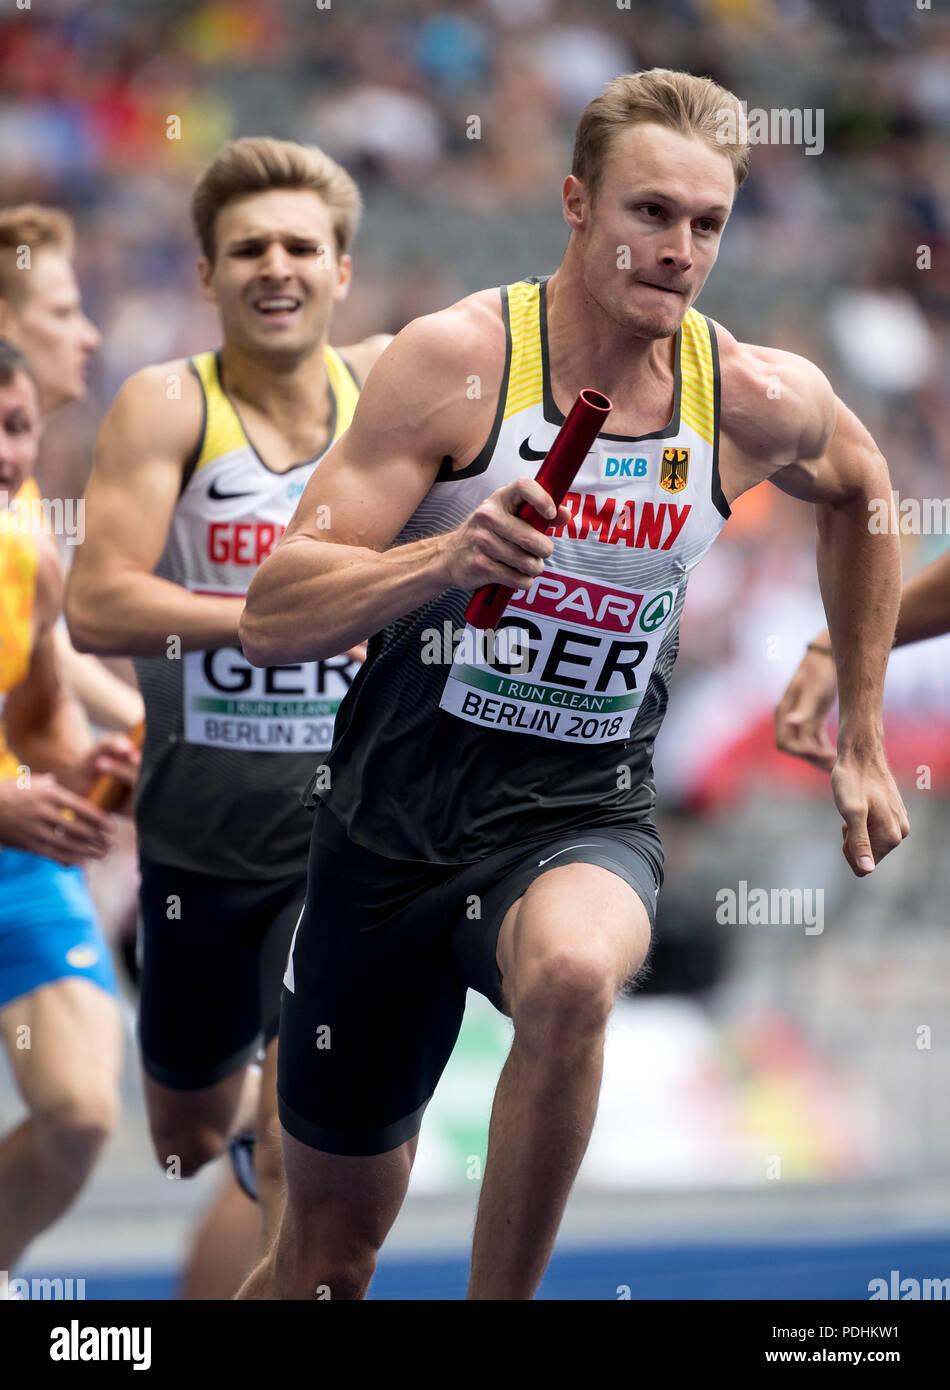 Berlin, Germany. 10th Aug, 2018. European Athletics Championships at the Olympic Stadium: 4x400 Meter Relay, Men, Round 1: Fabian Dammer (L) passes the baton to Johannes Trefz from Germany. Credit: Sven Hoppe/dpa/Alamy Live News - Stock Image